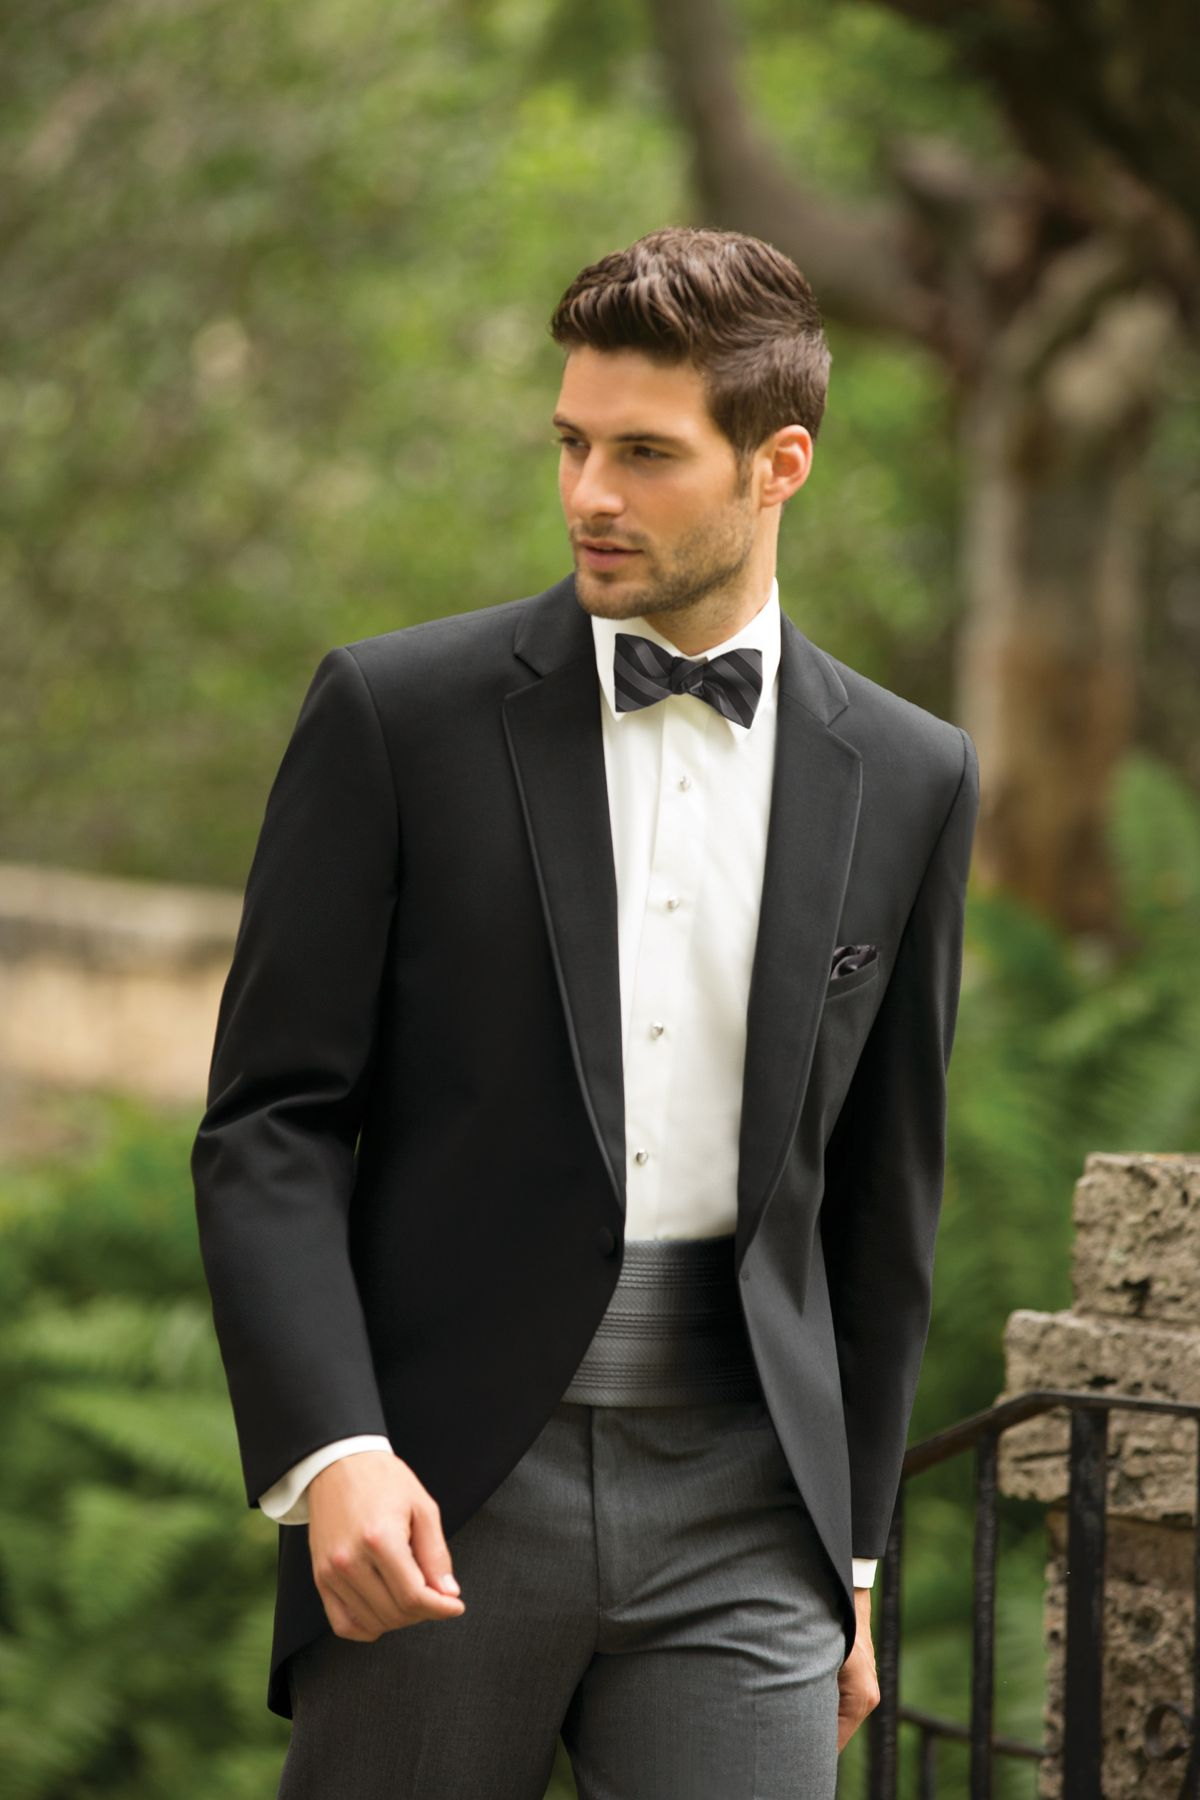 30 stylish tuxedos for the groom men wedding suits man style and mens wedding tuxedos ideas 2015 00 junglespirit Choice Image